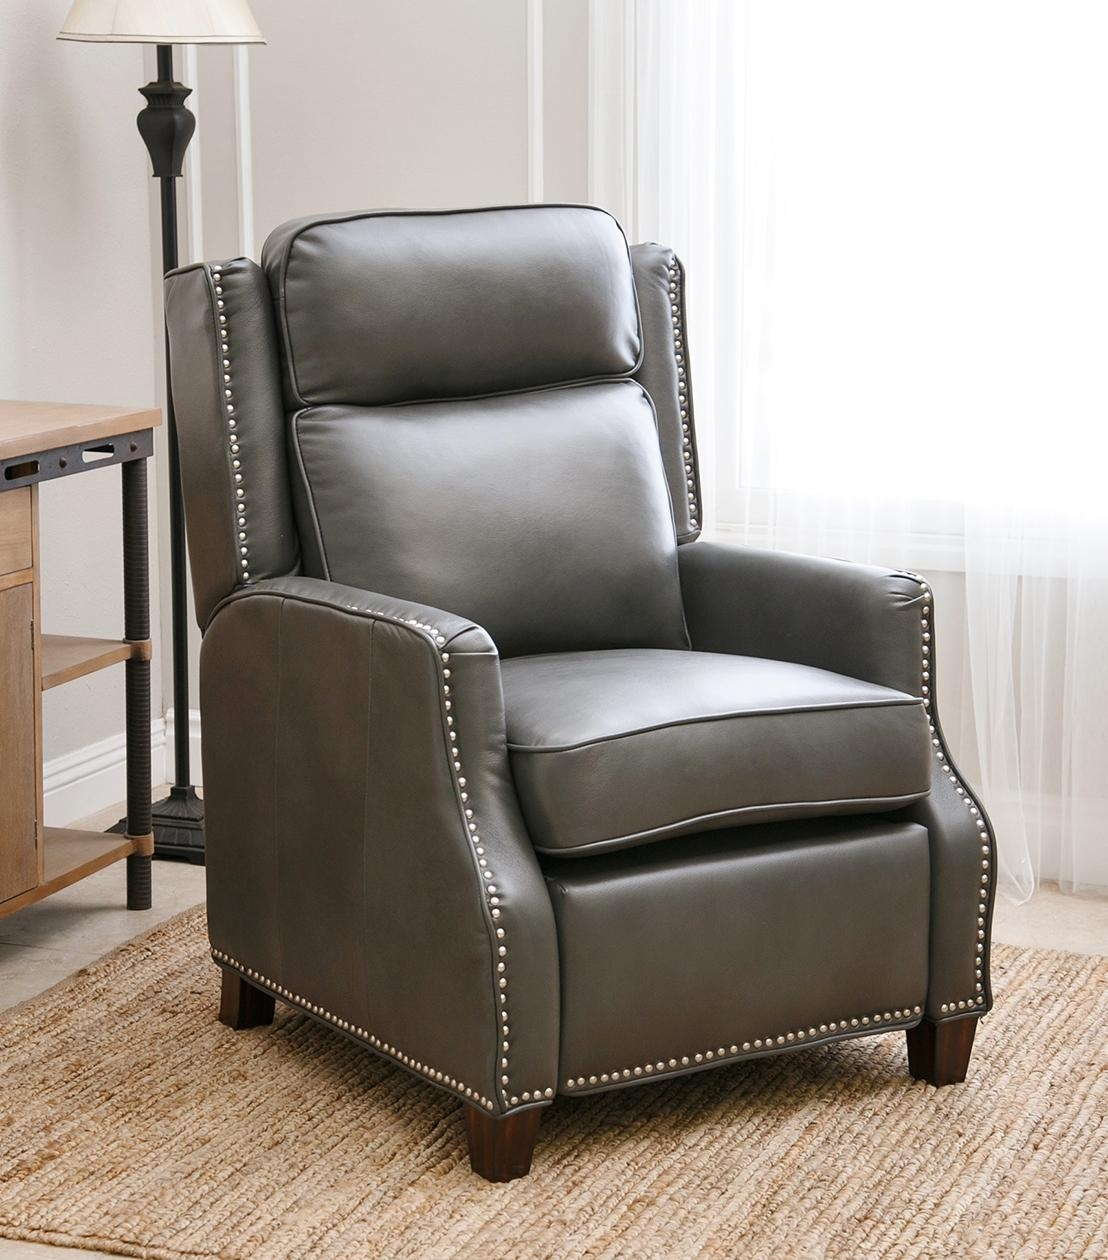 Recliners : Richfield Leather Recliner Within Abbyson Recliners (View 6 of 20)